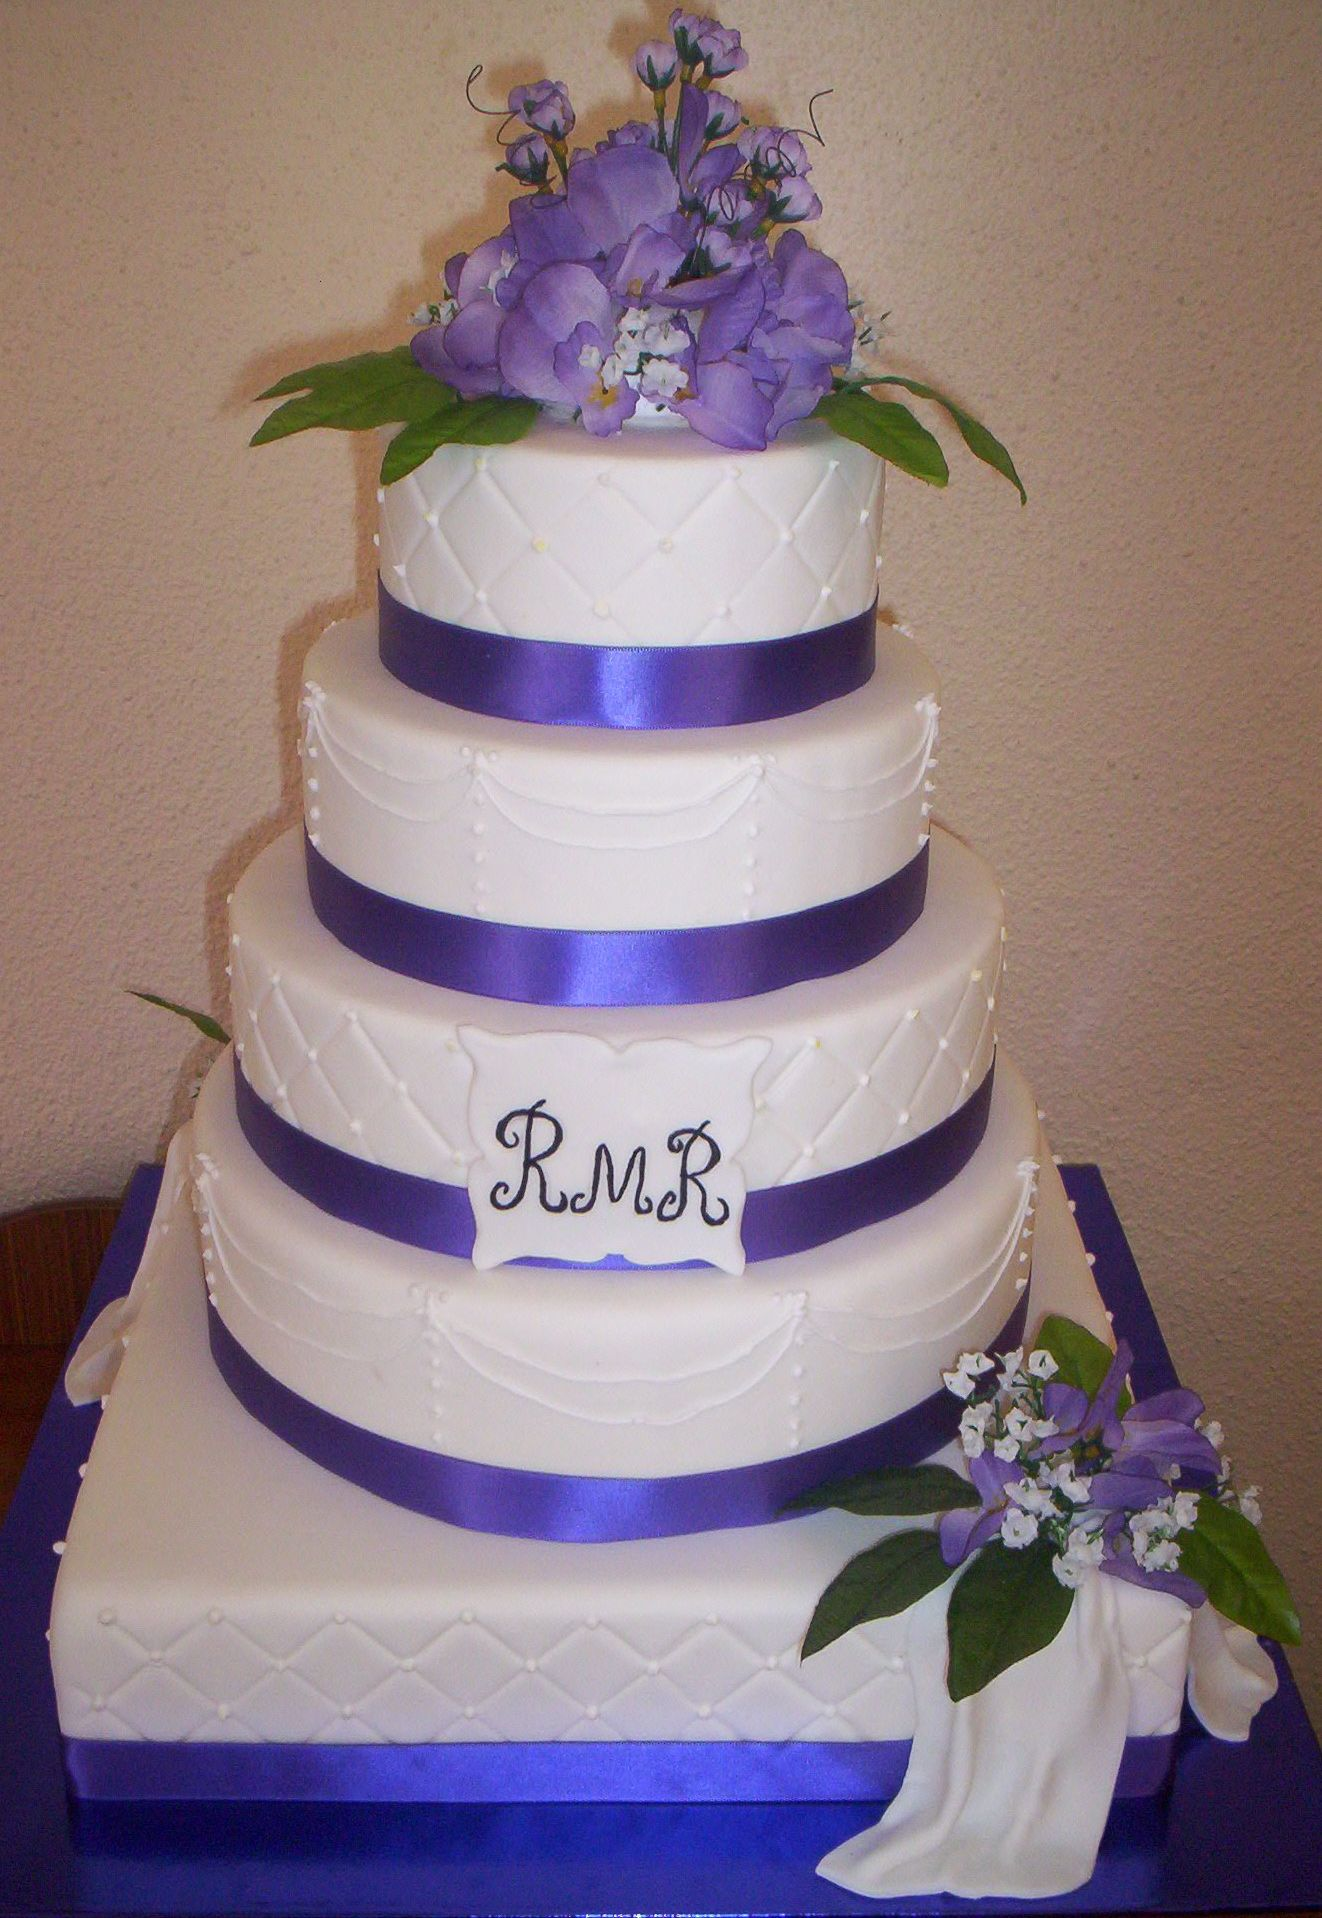 DUMMY WEDDING CAKE - This was a photo of a cake that I was ...